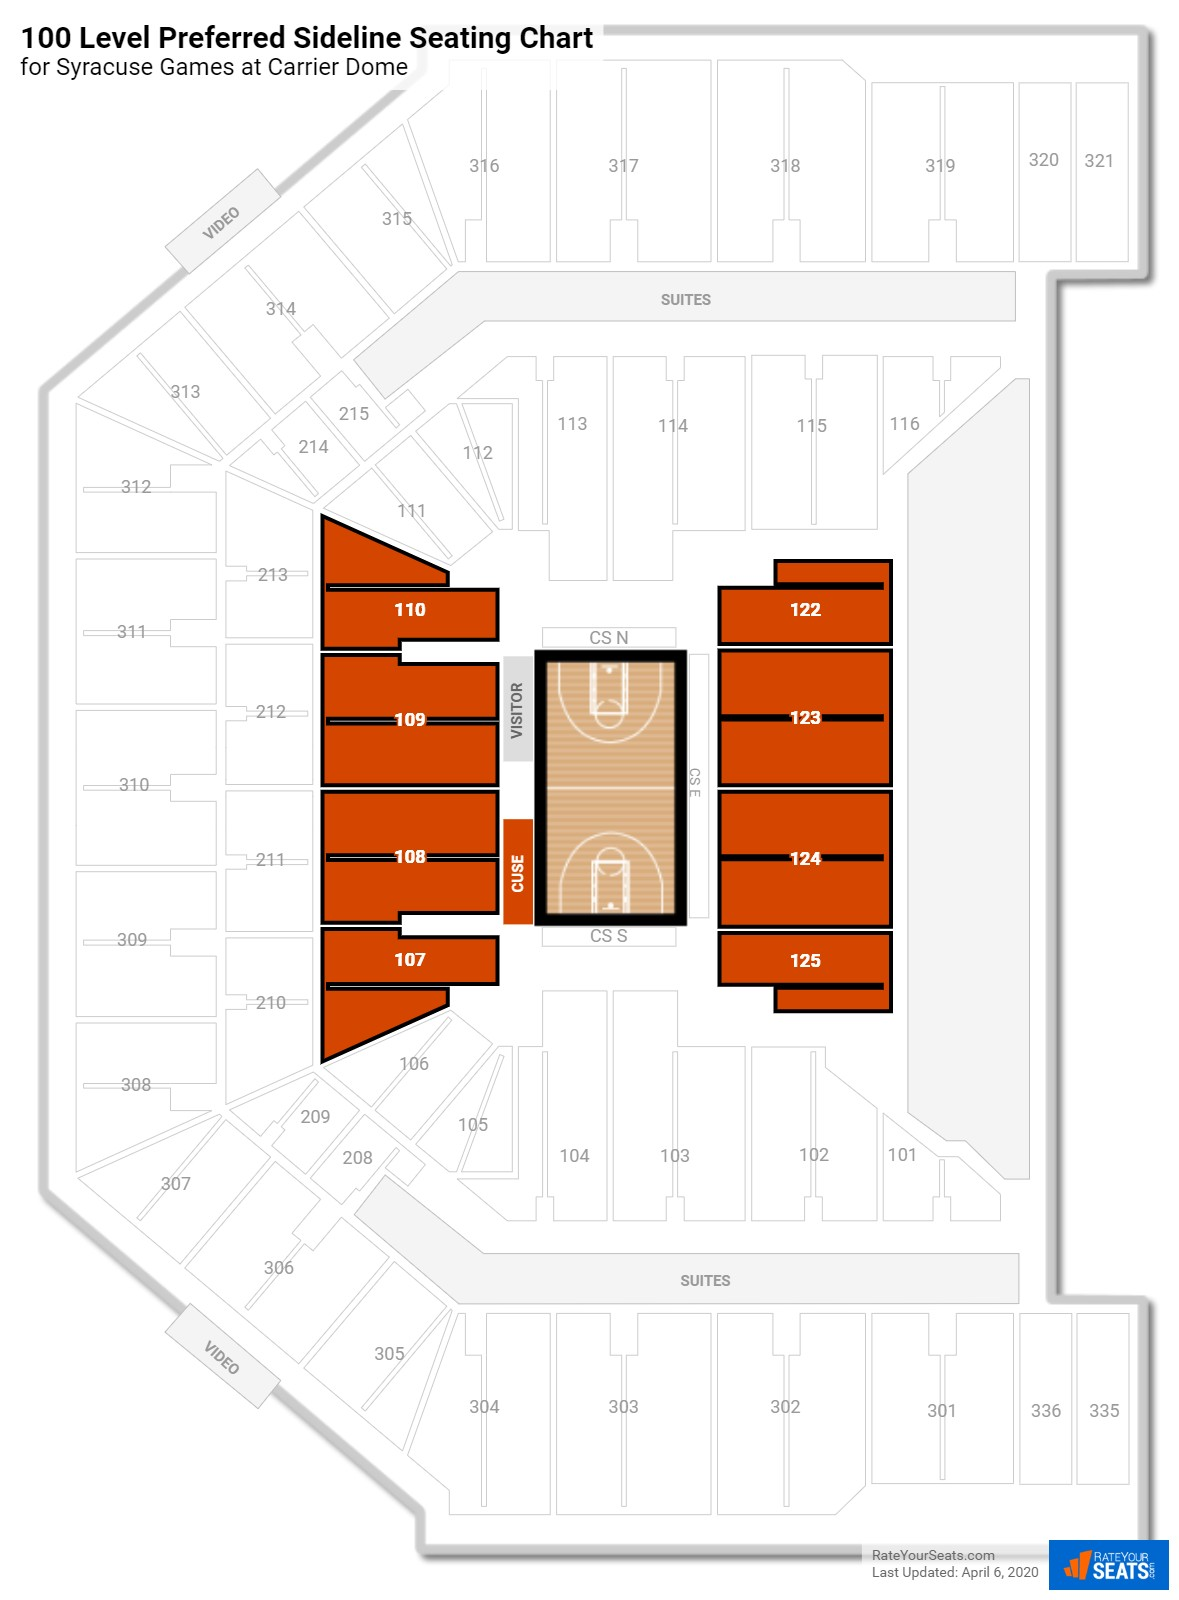 Syracuse Basketball Seating Chart : syracuse, basketball, seating, chart, Carrier, Courtside, Basketball, Seating, RateYourSeats.com